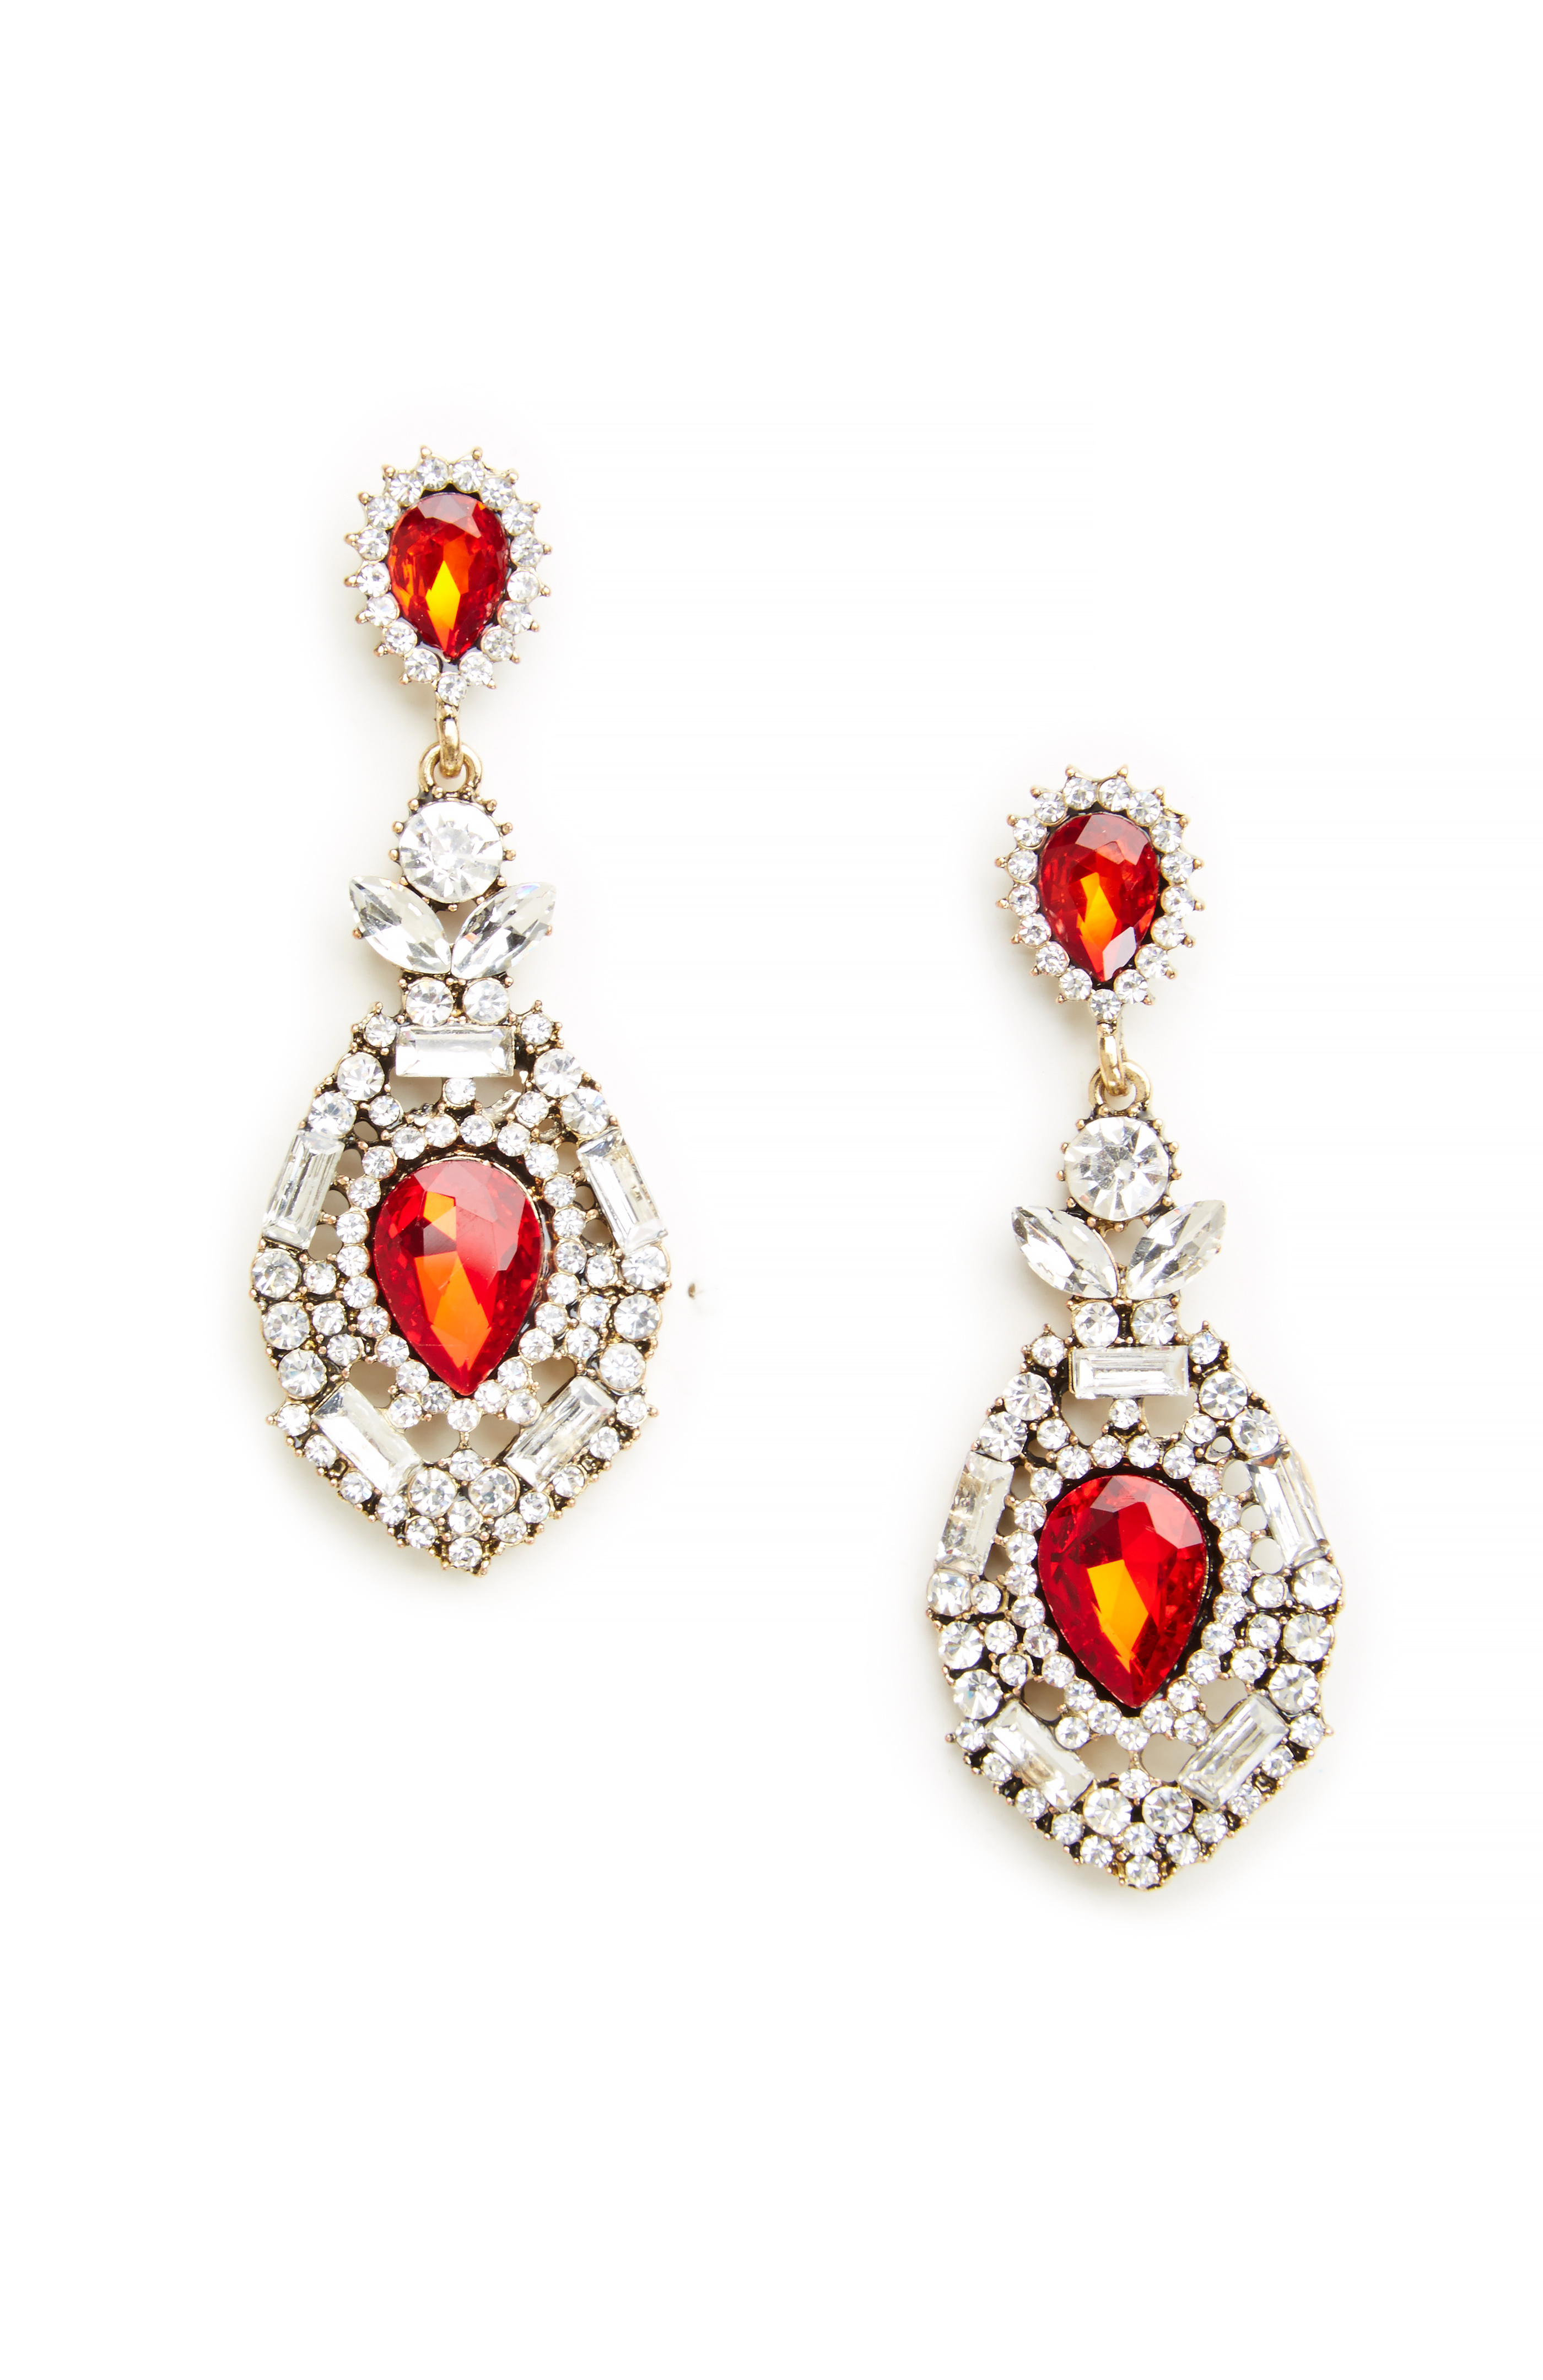 DAILYLOOK Jessica Rabbit Jeweled Earrings in silver/red at DAILYLOOK